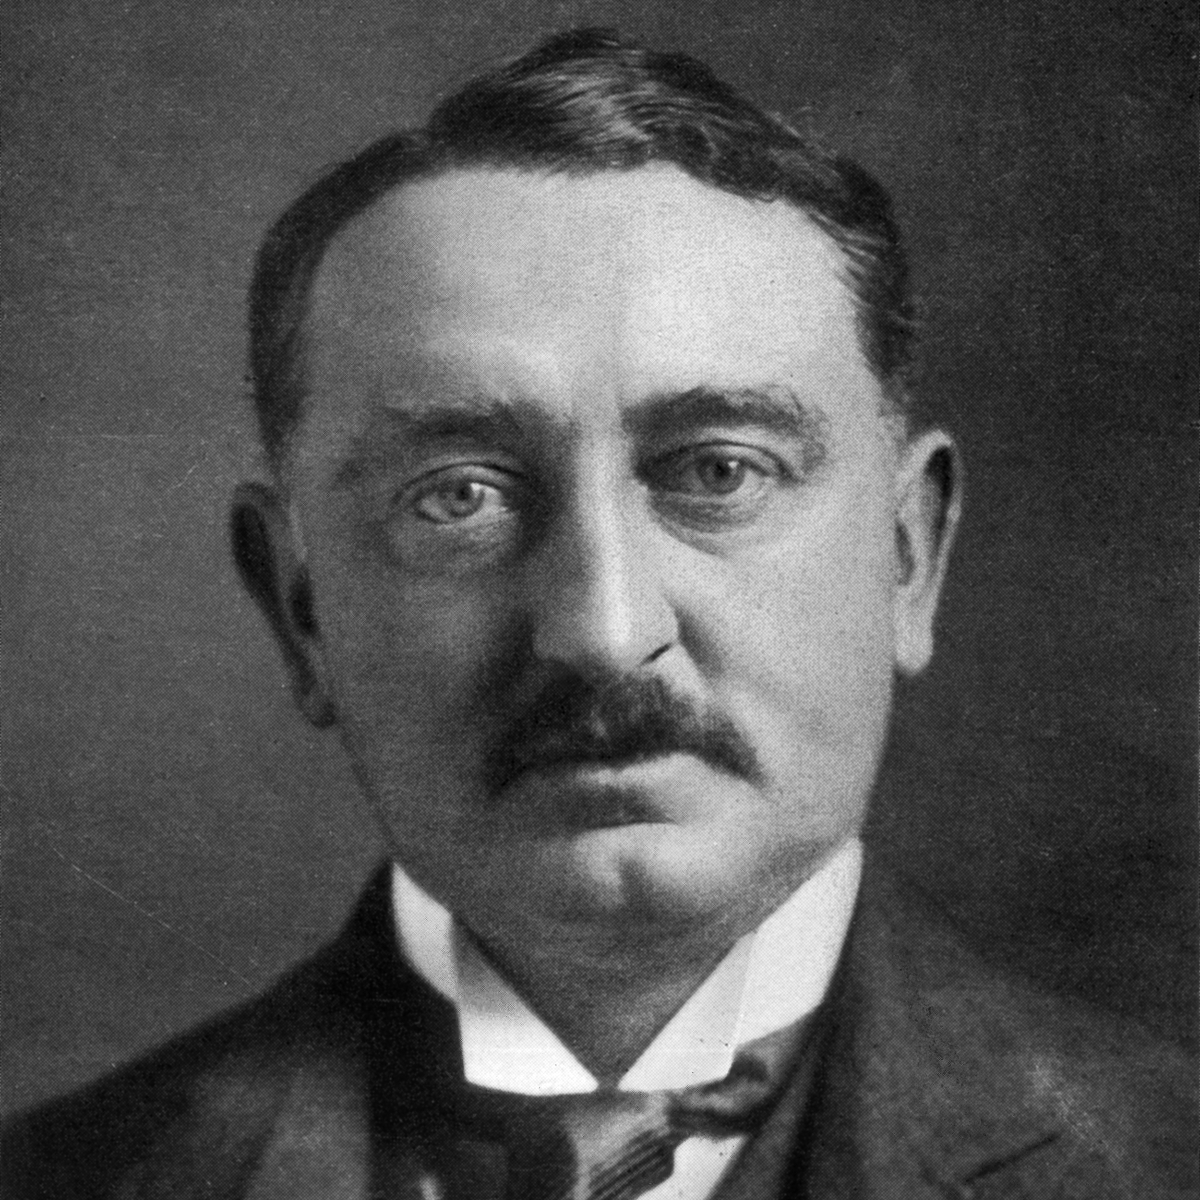 The Rhodes scholarship is named after British businessman Cecil Rhodes. (Photo courtesy Wikimedia Commons)